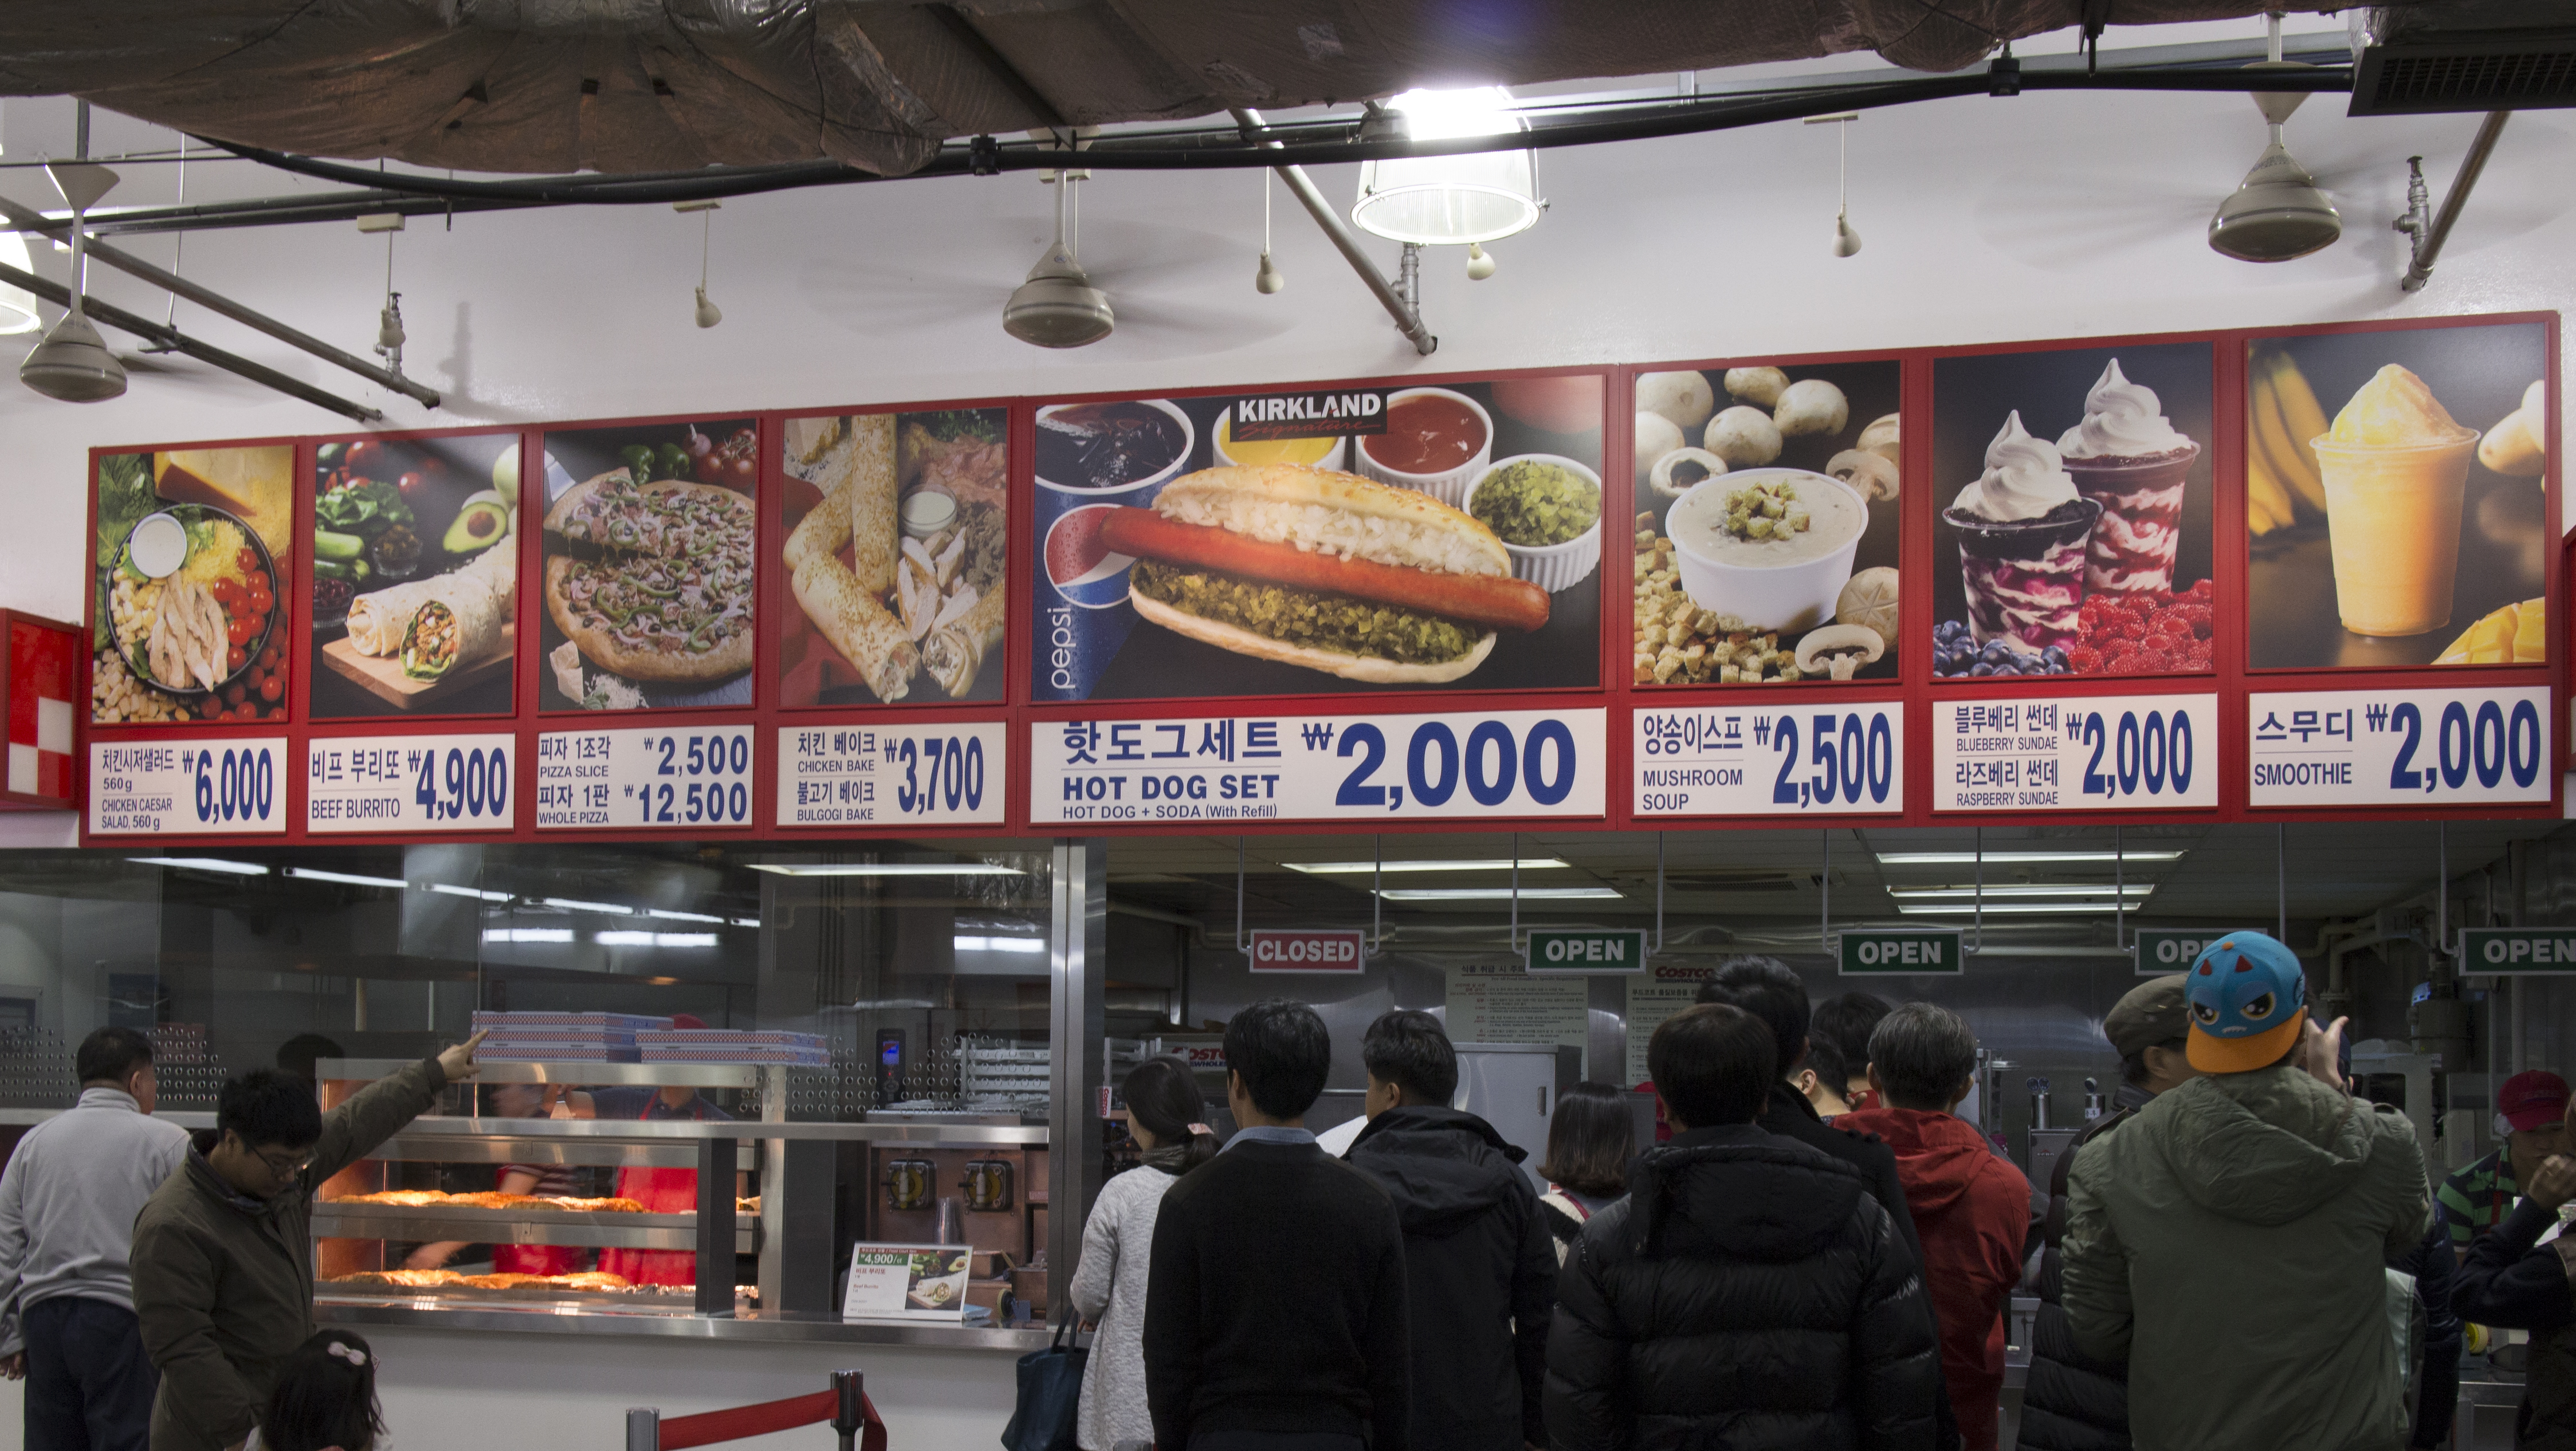 Costco Fast Food Restaurant